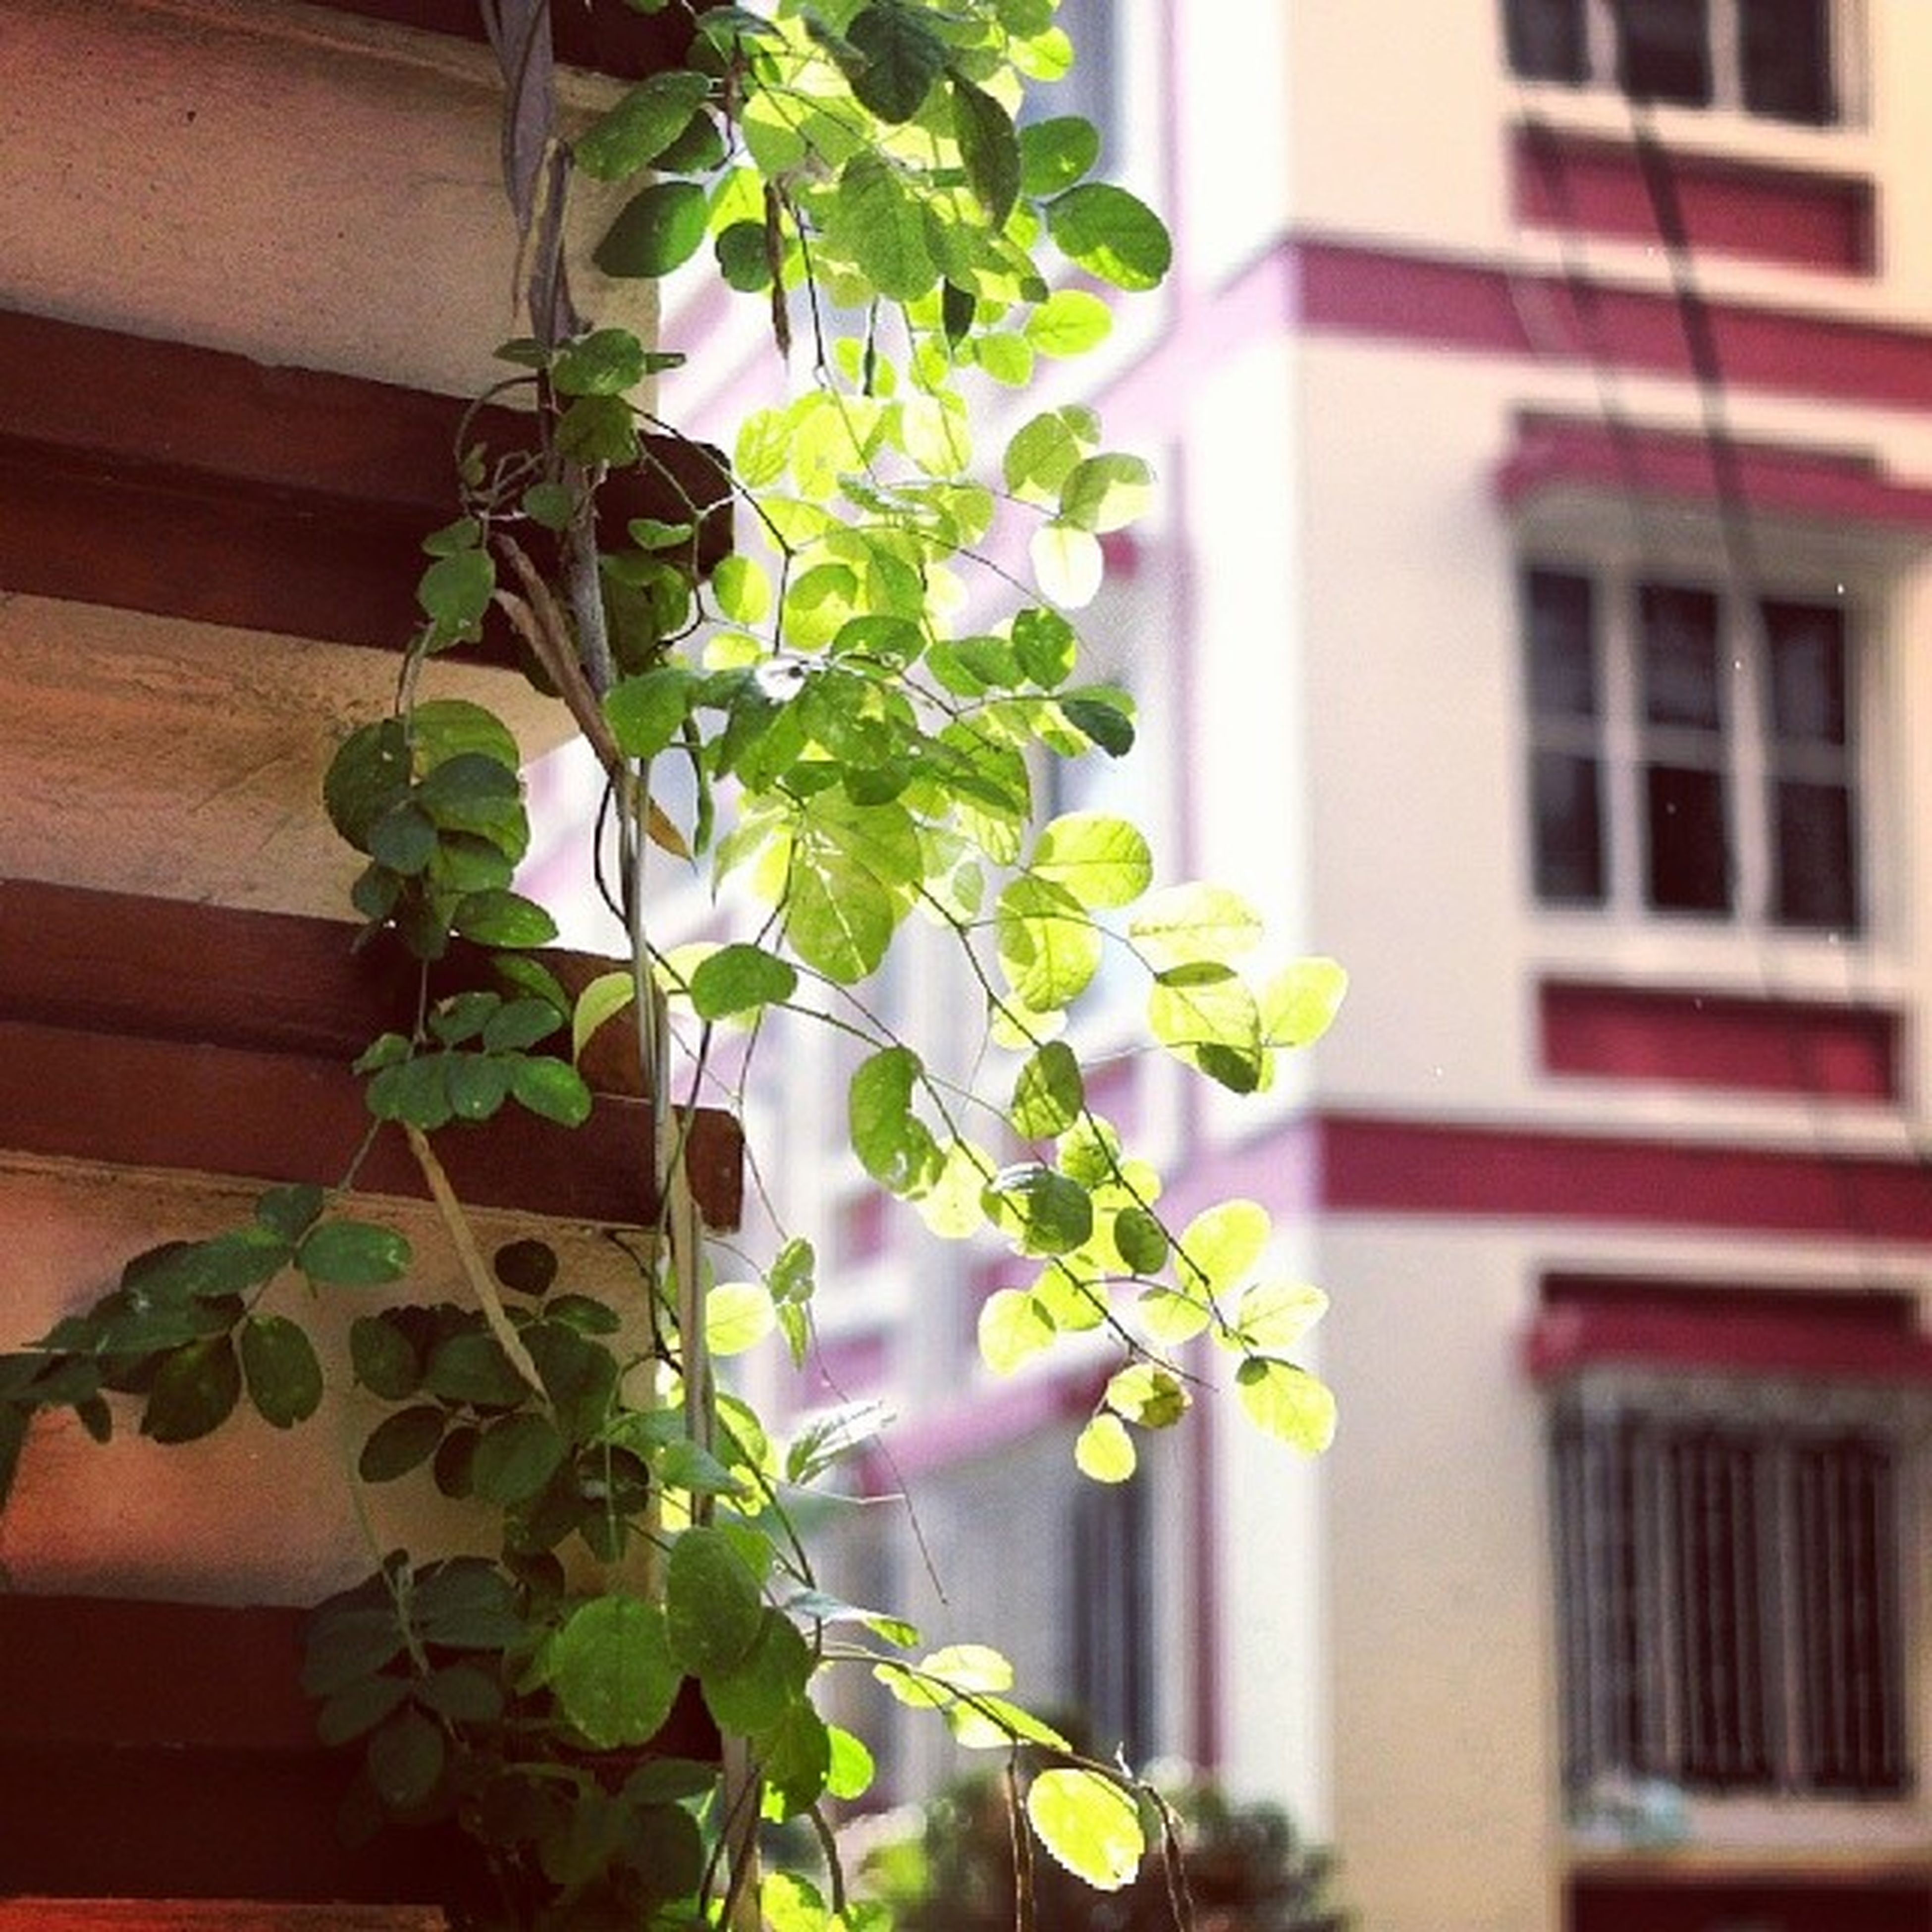 building exterior, architecture, built structure, growth, leaf, plant, window, house, potted plant, low angle view, green color, residential structure, residential building, ivy, balcony, nature, close-up, day, no people, front or back yard